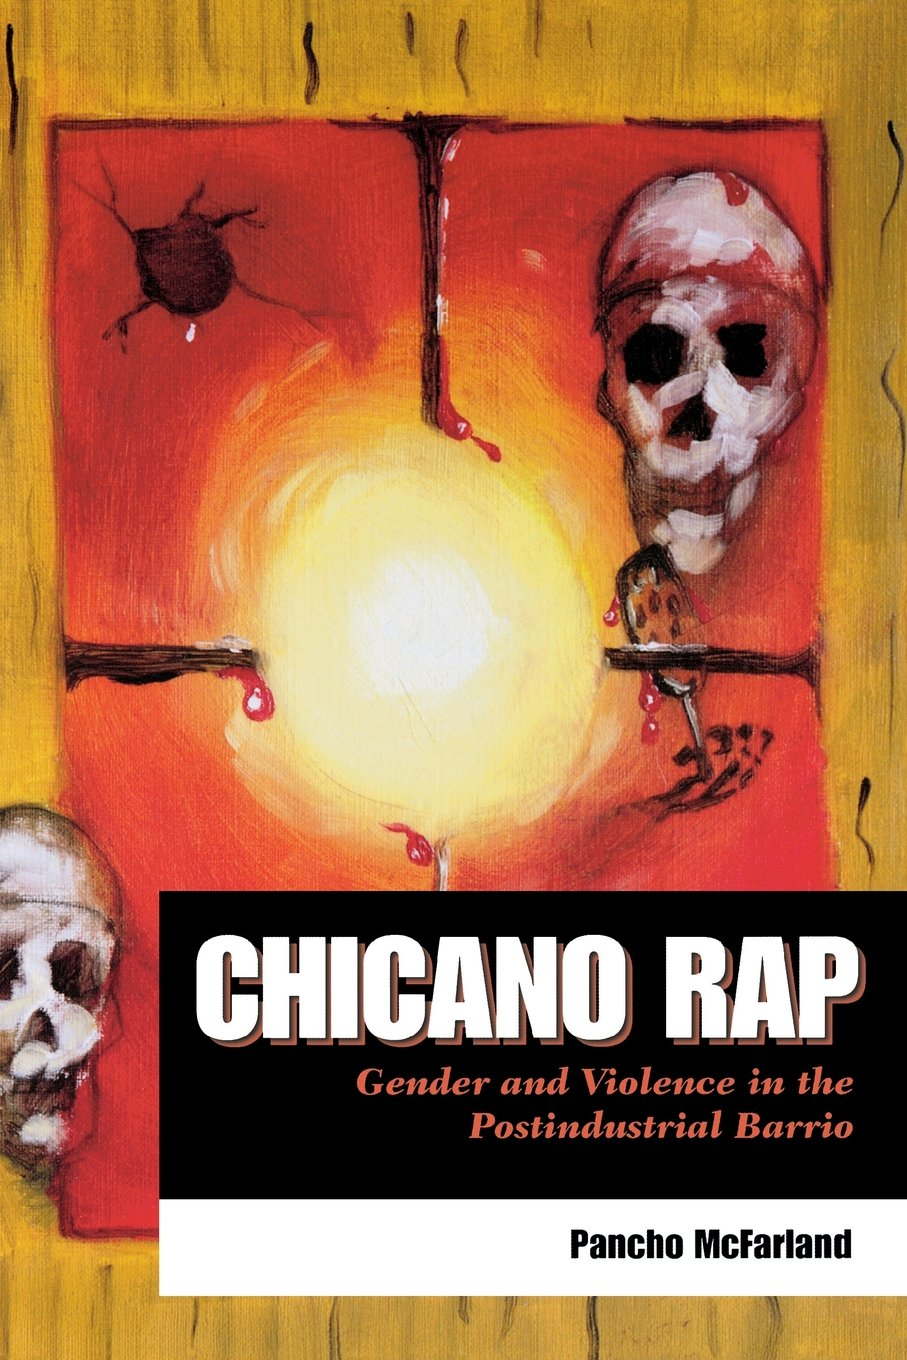 Download free chicano rap albums.